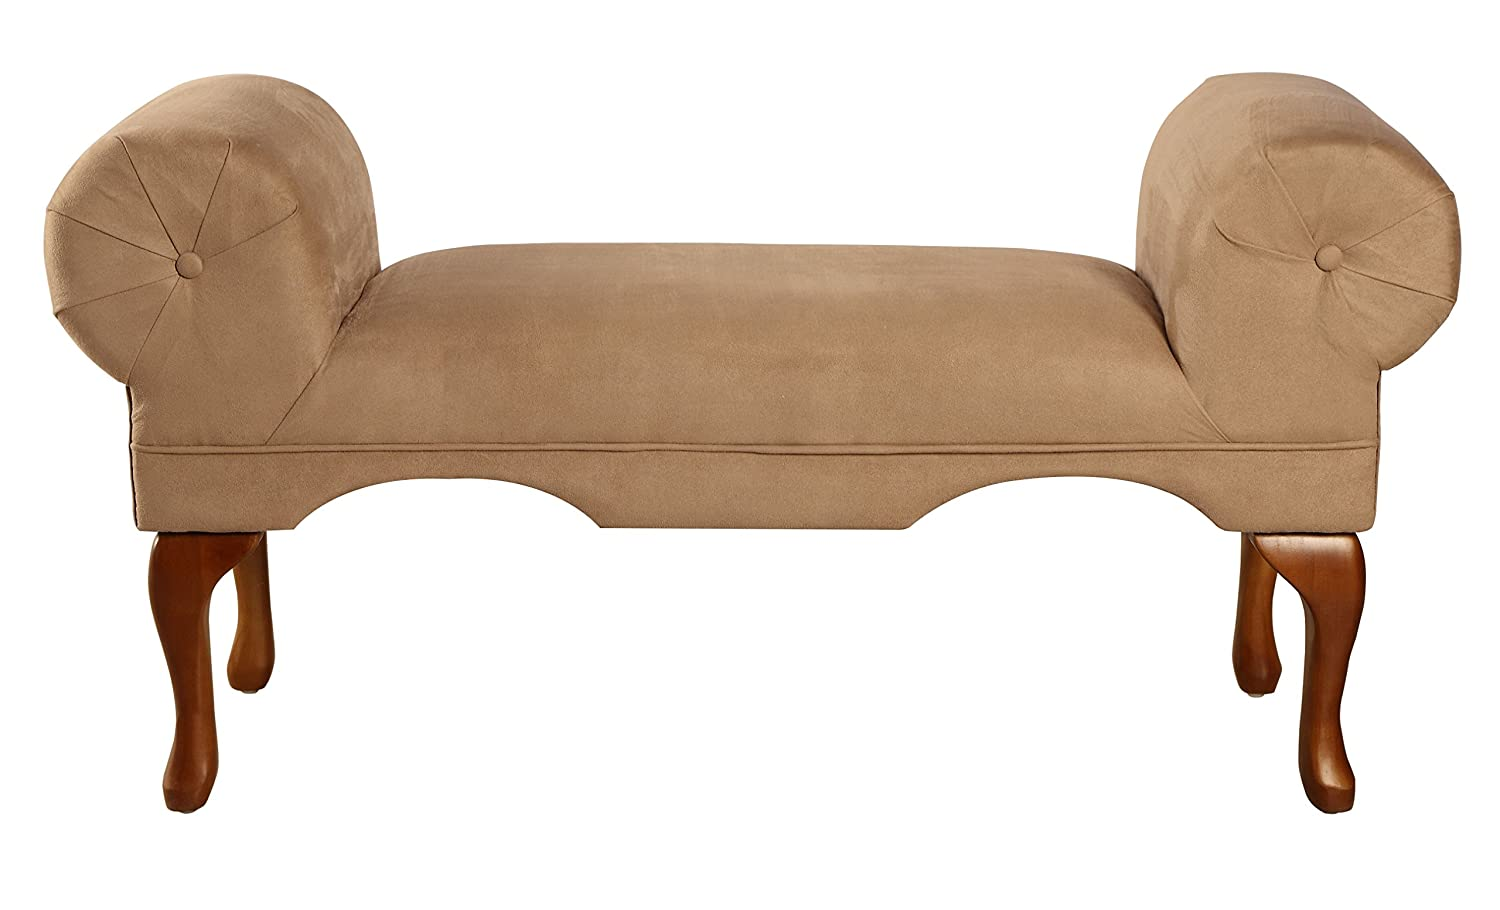 ACME 05629 Aston Microfiber Rolled Arm Bench, Beige Finish